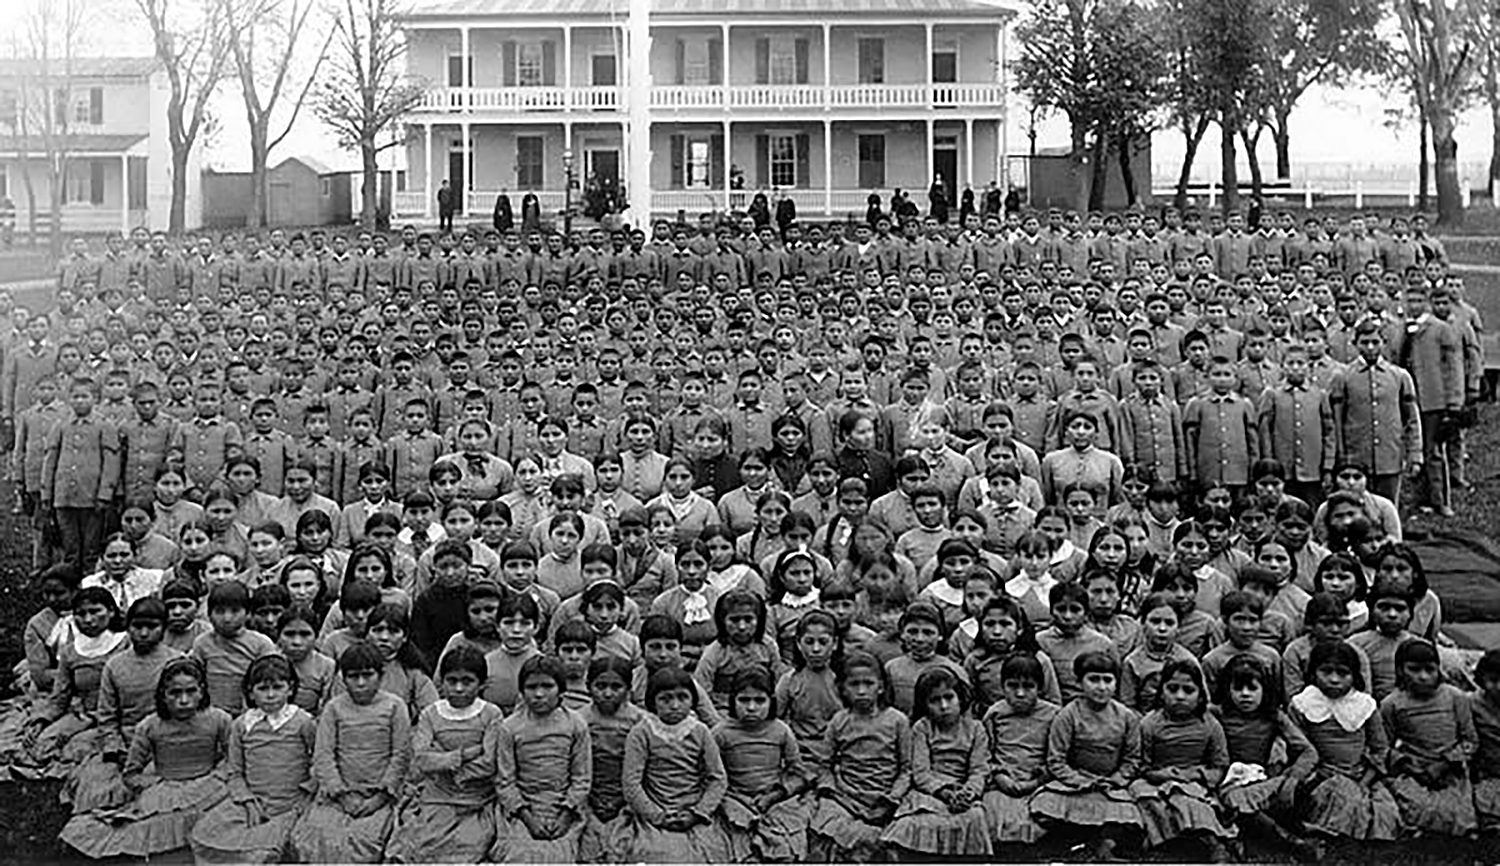 Indians In The Family Adoption And The Politics Of Antebellum Expansion